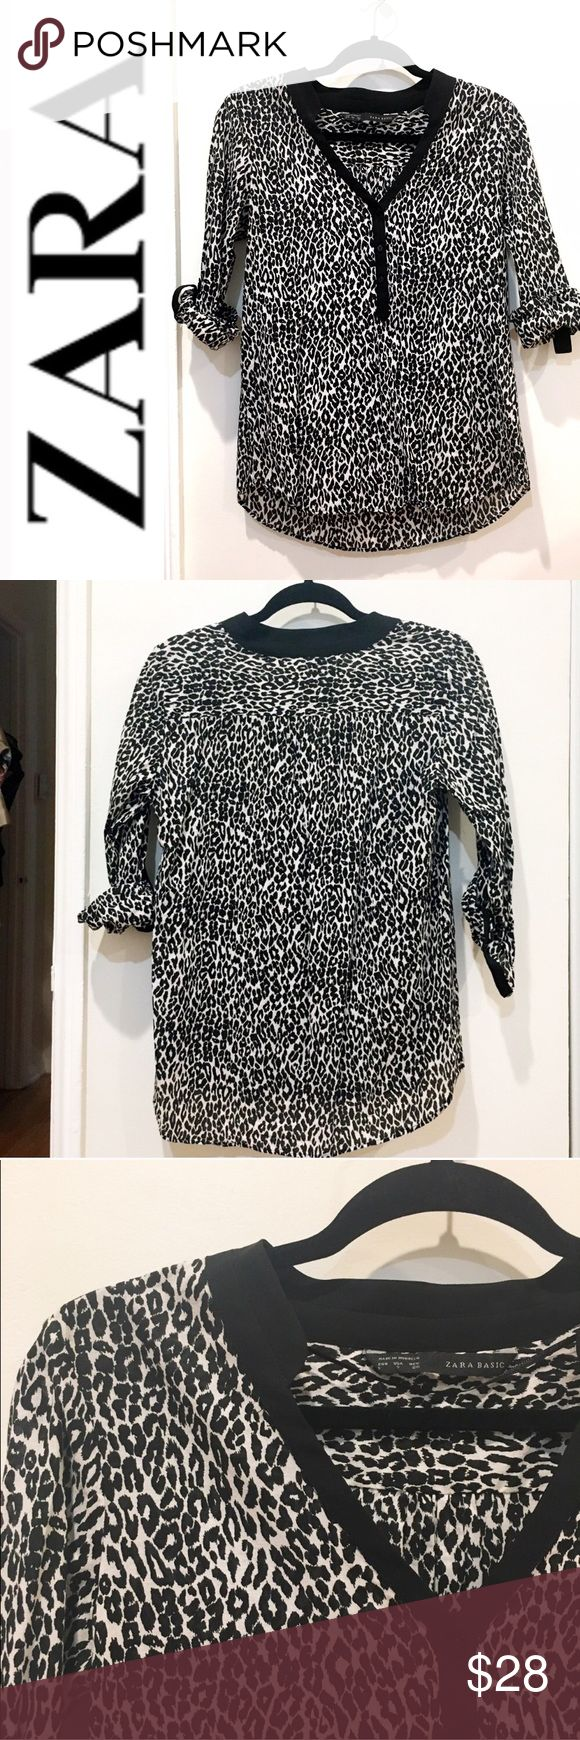 """Zara b&w leopard print shirt Pretty black & white leopard print blouse from Zara. Lightweight. Cotton. No condition issues, gently worn. Slightly high low. Roll up sleeves. Length from shoulder is about 22"""". Armpit to armpit flat is 19"""". Zara Tops Blouses"""